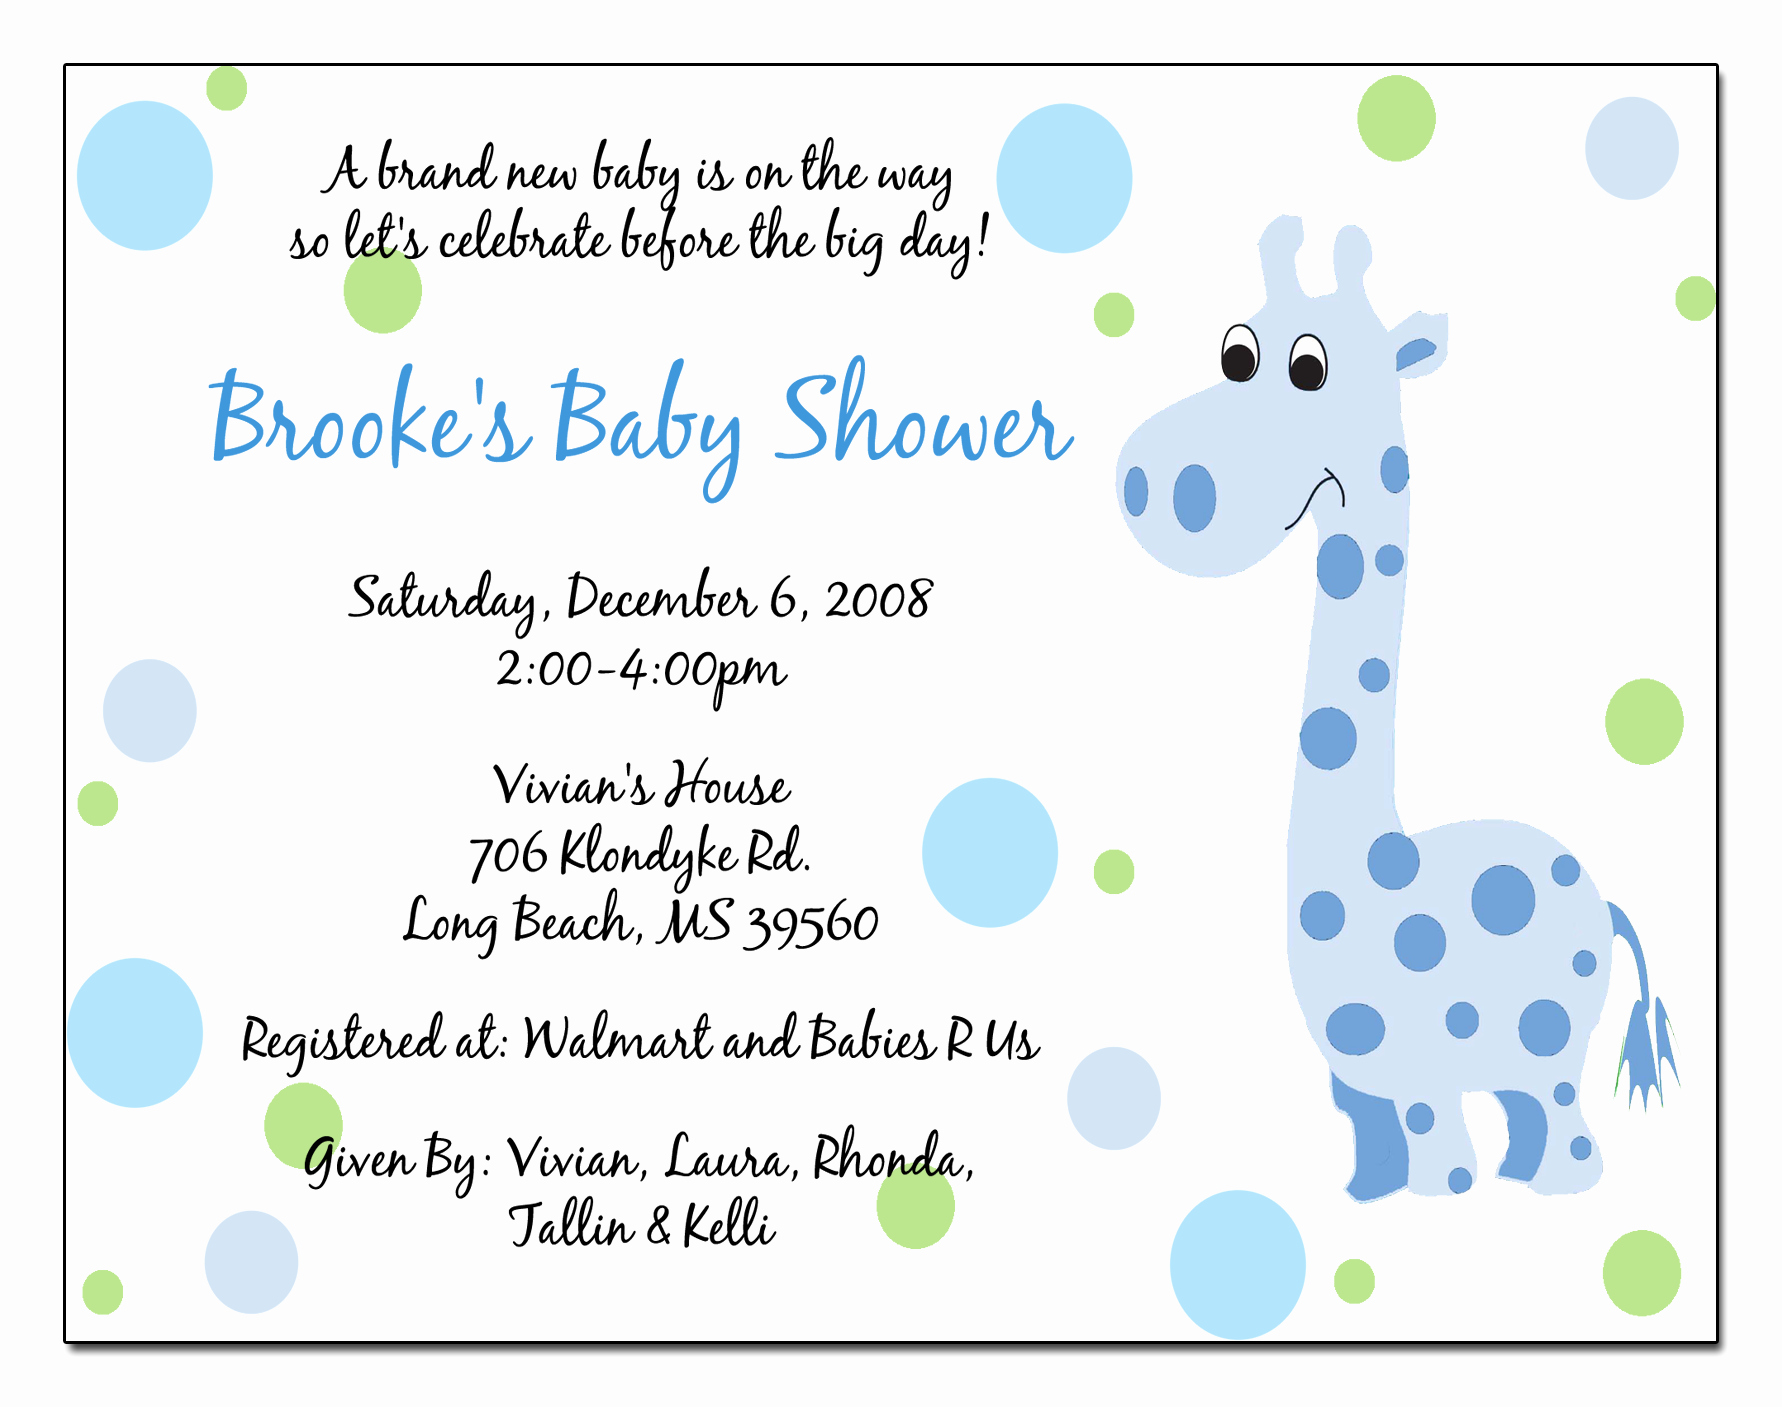 Baby Boy Shower Invitation Wording Elegant Baby Boy Shower Invitations Wording Ideas